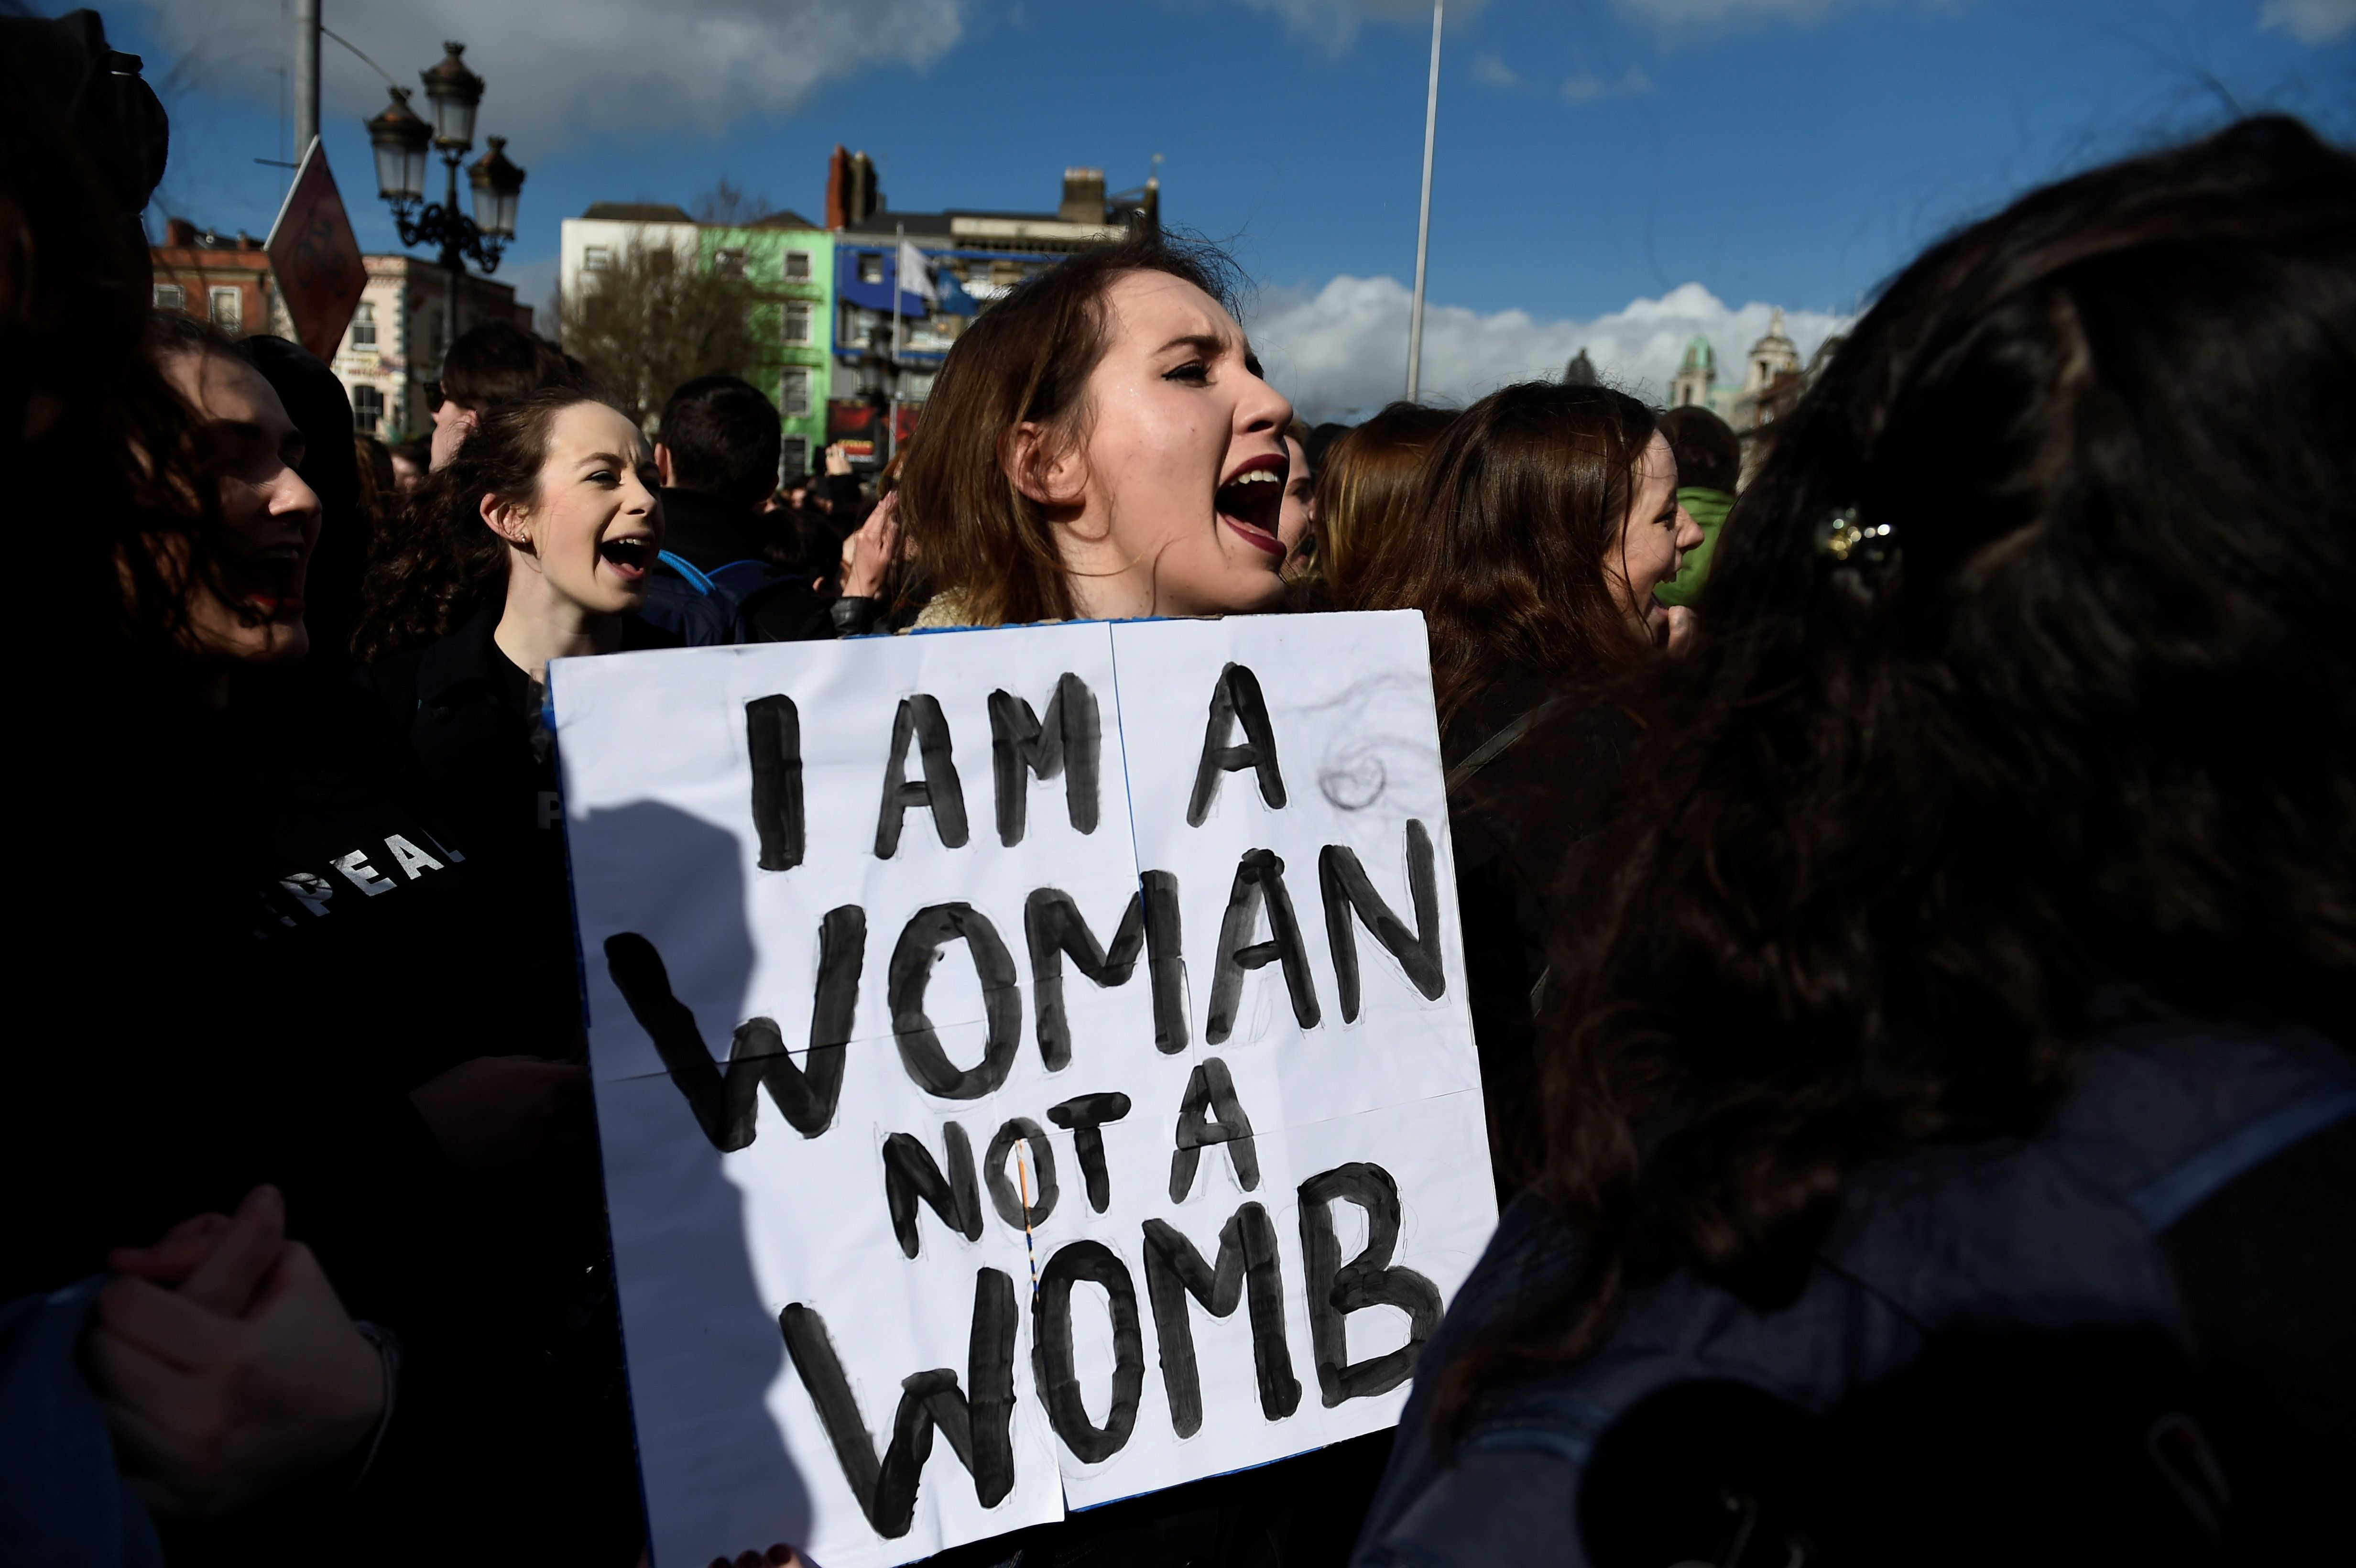 A woman protests in Dublin in March against Ireland's harsh abortion restrictions.